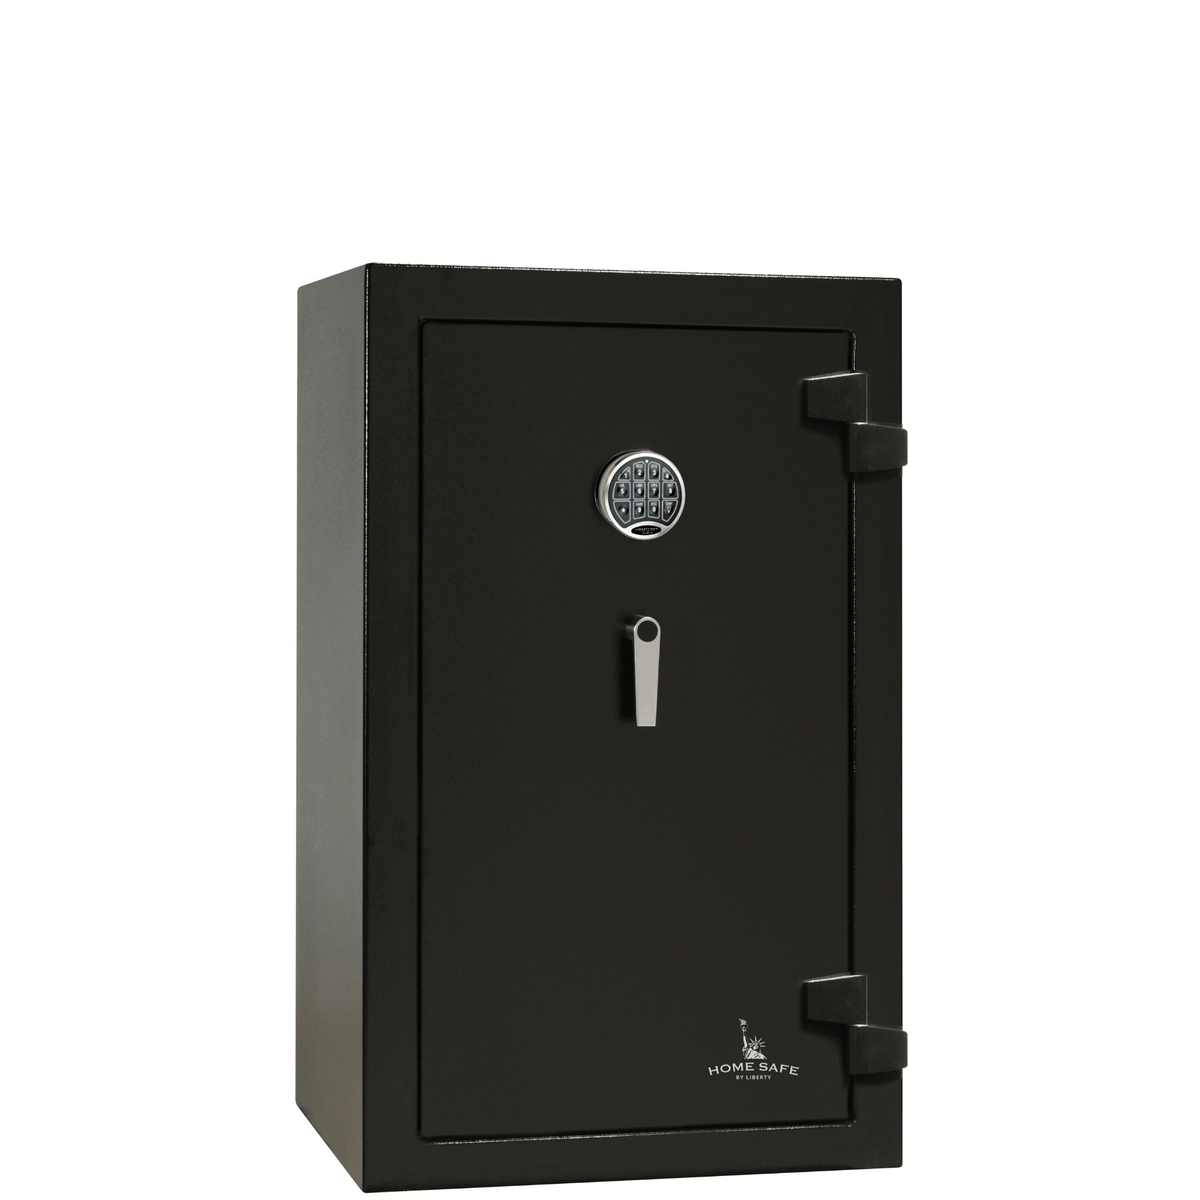 "Home Safe | 12 | 60 Minute Fire Protection | Black | Electronic Lock | Dimensions: 42""(H) x 24.25""(W) x 22""(D)"